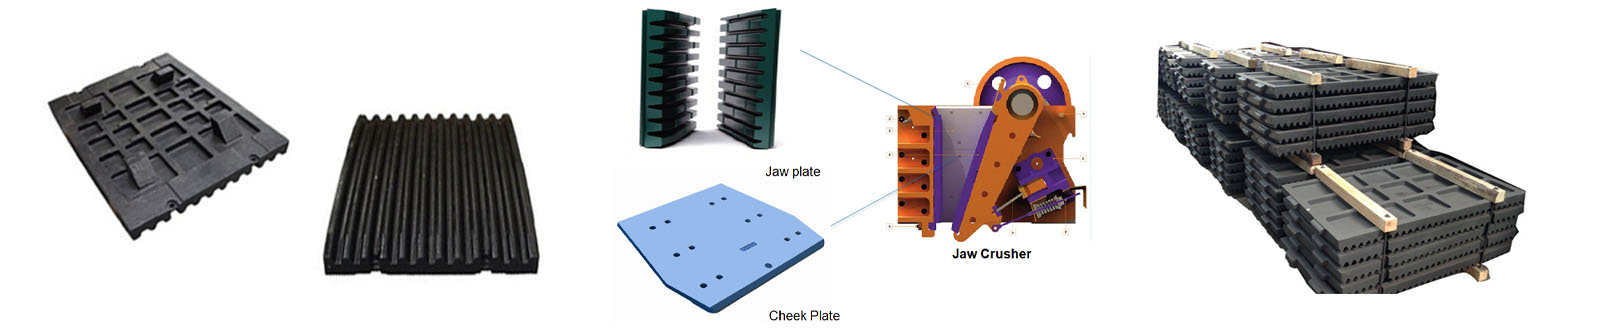 jaw plate 1600 328